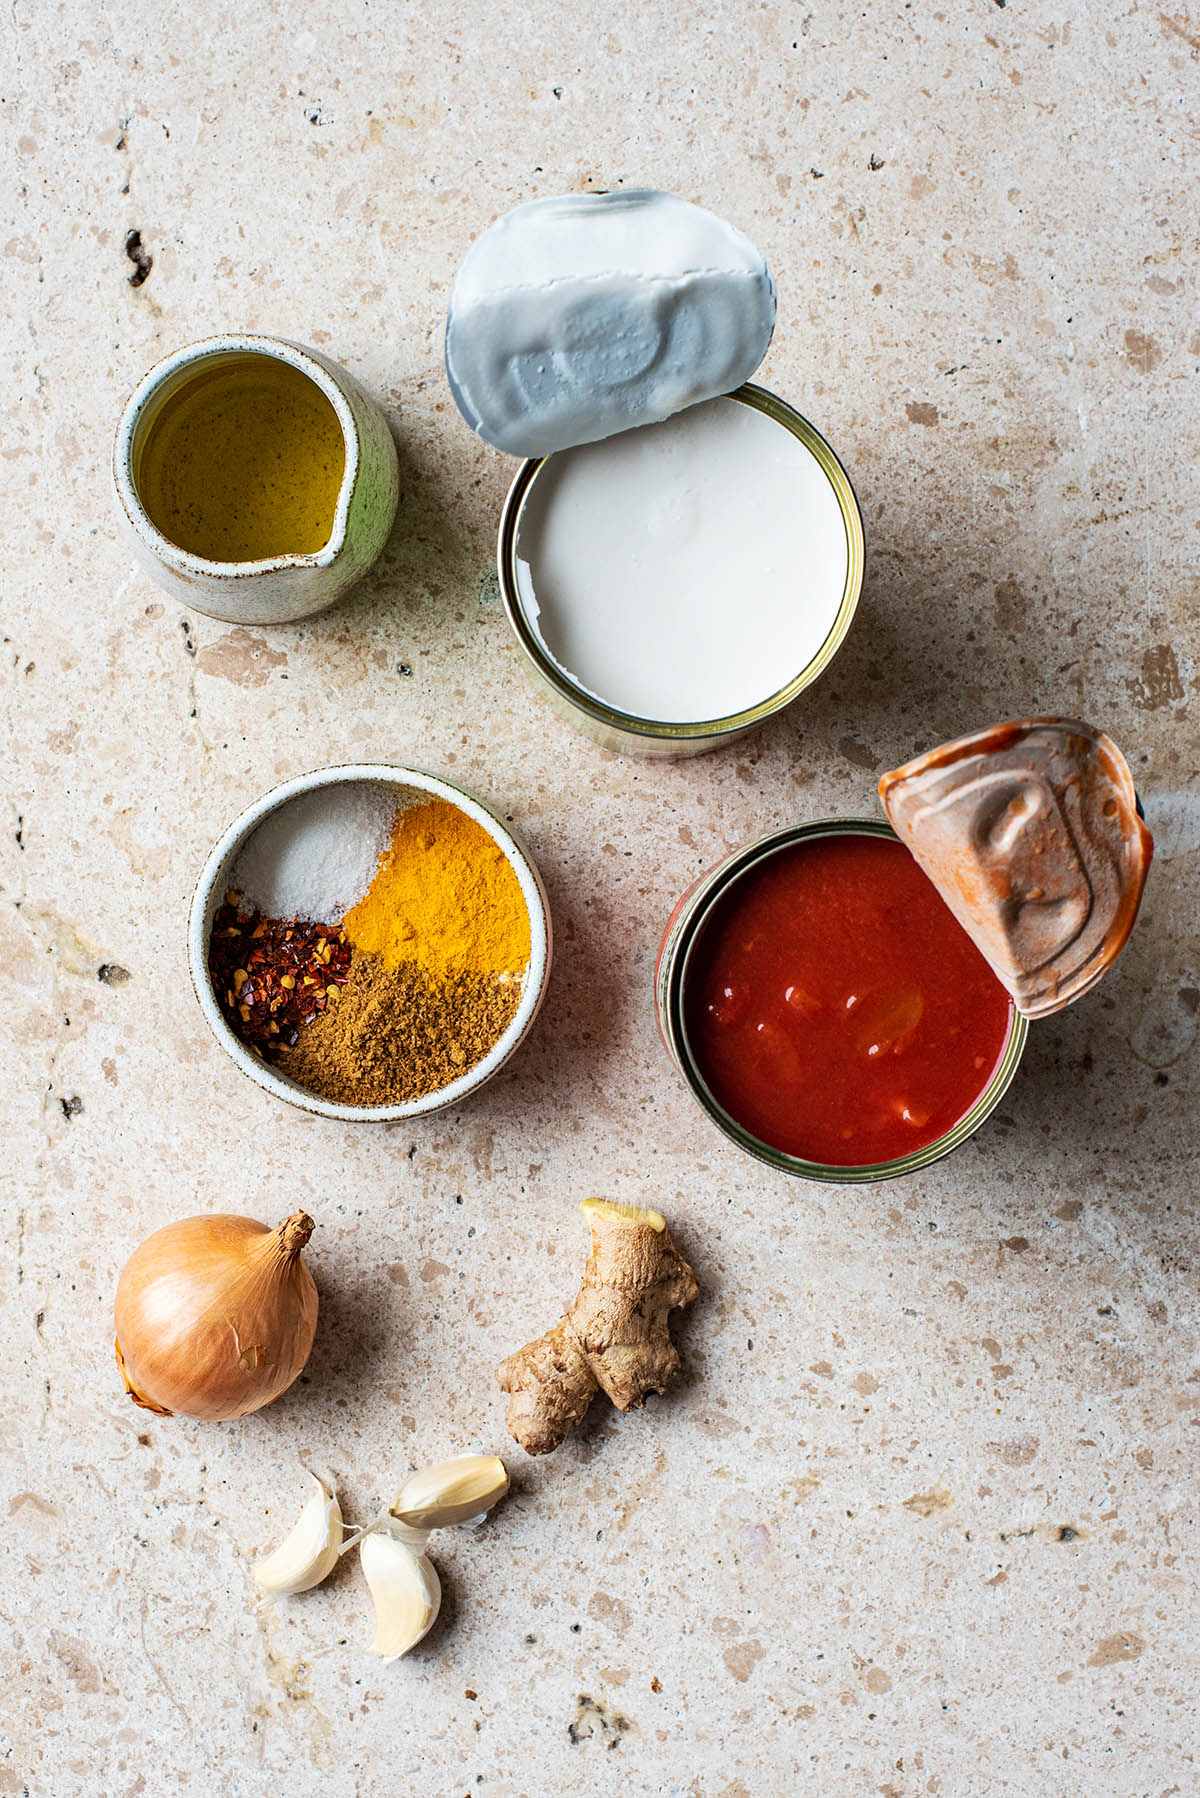 Spicy tomato soup ingredients.